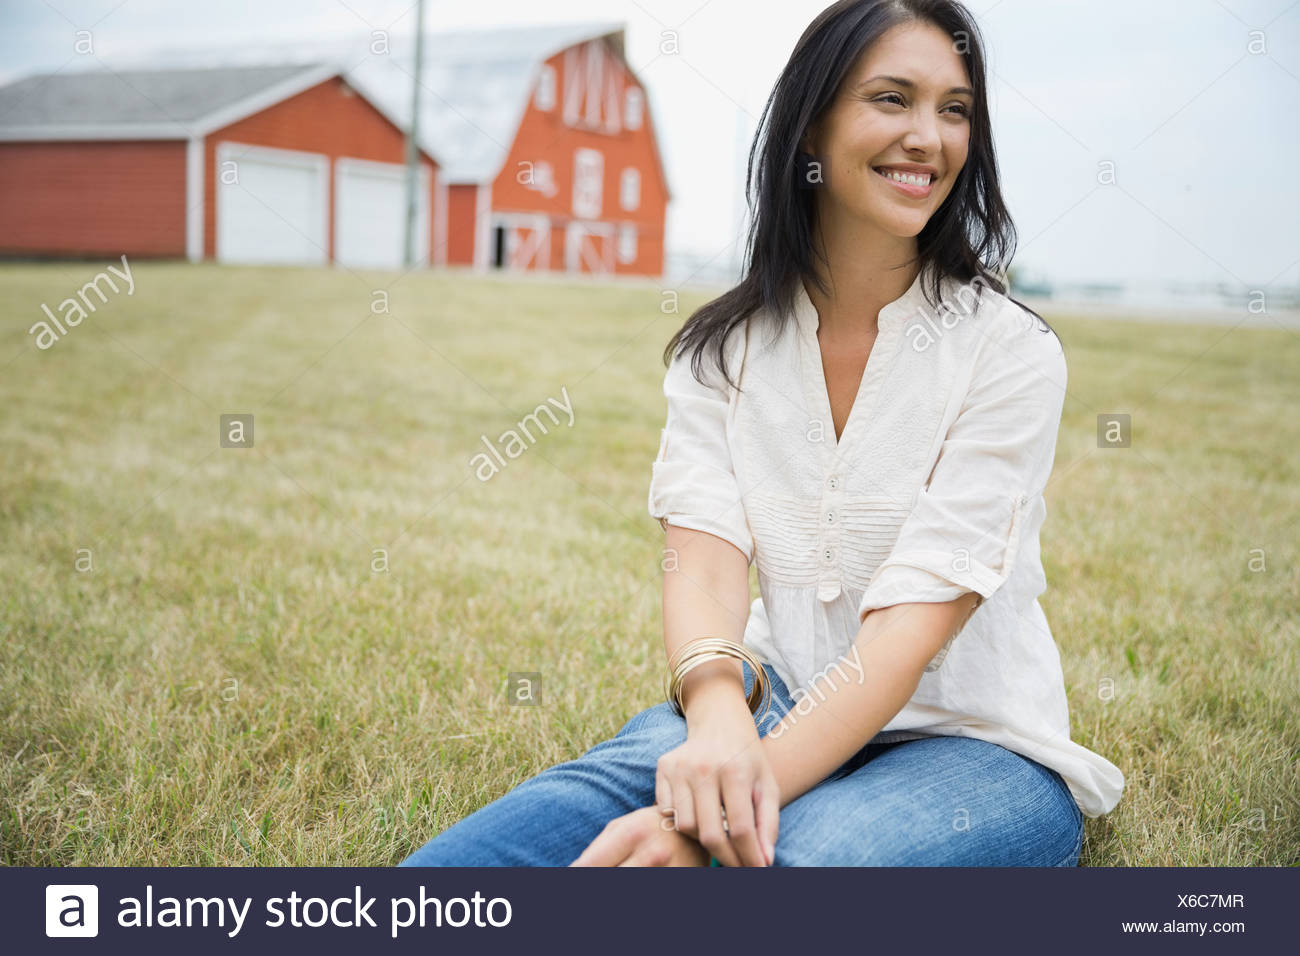 Smiling woman sitting outdoors - Stock Image